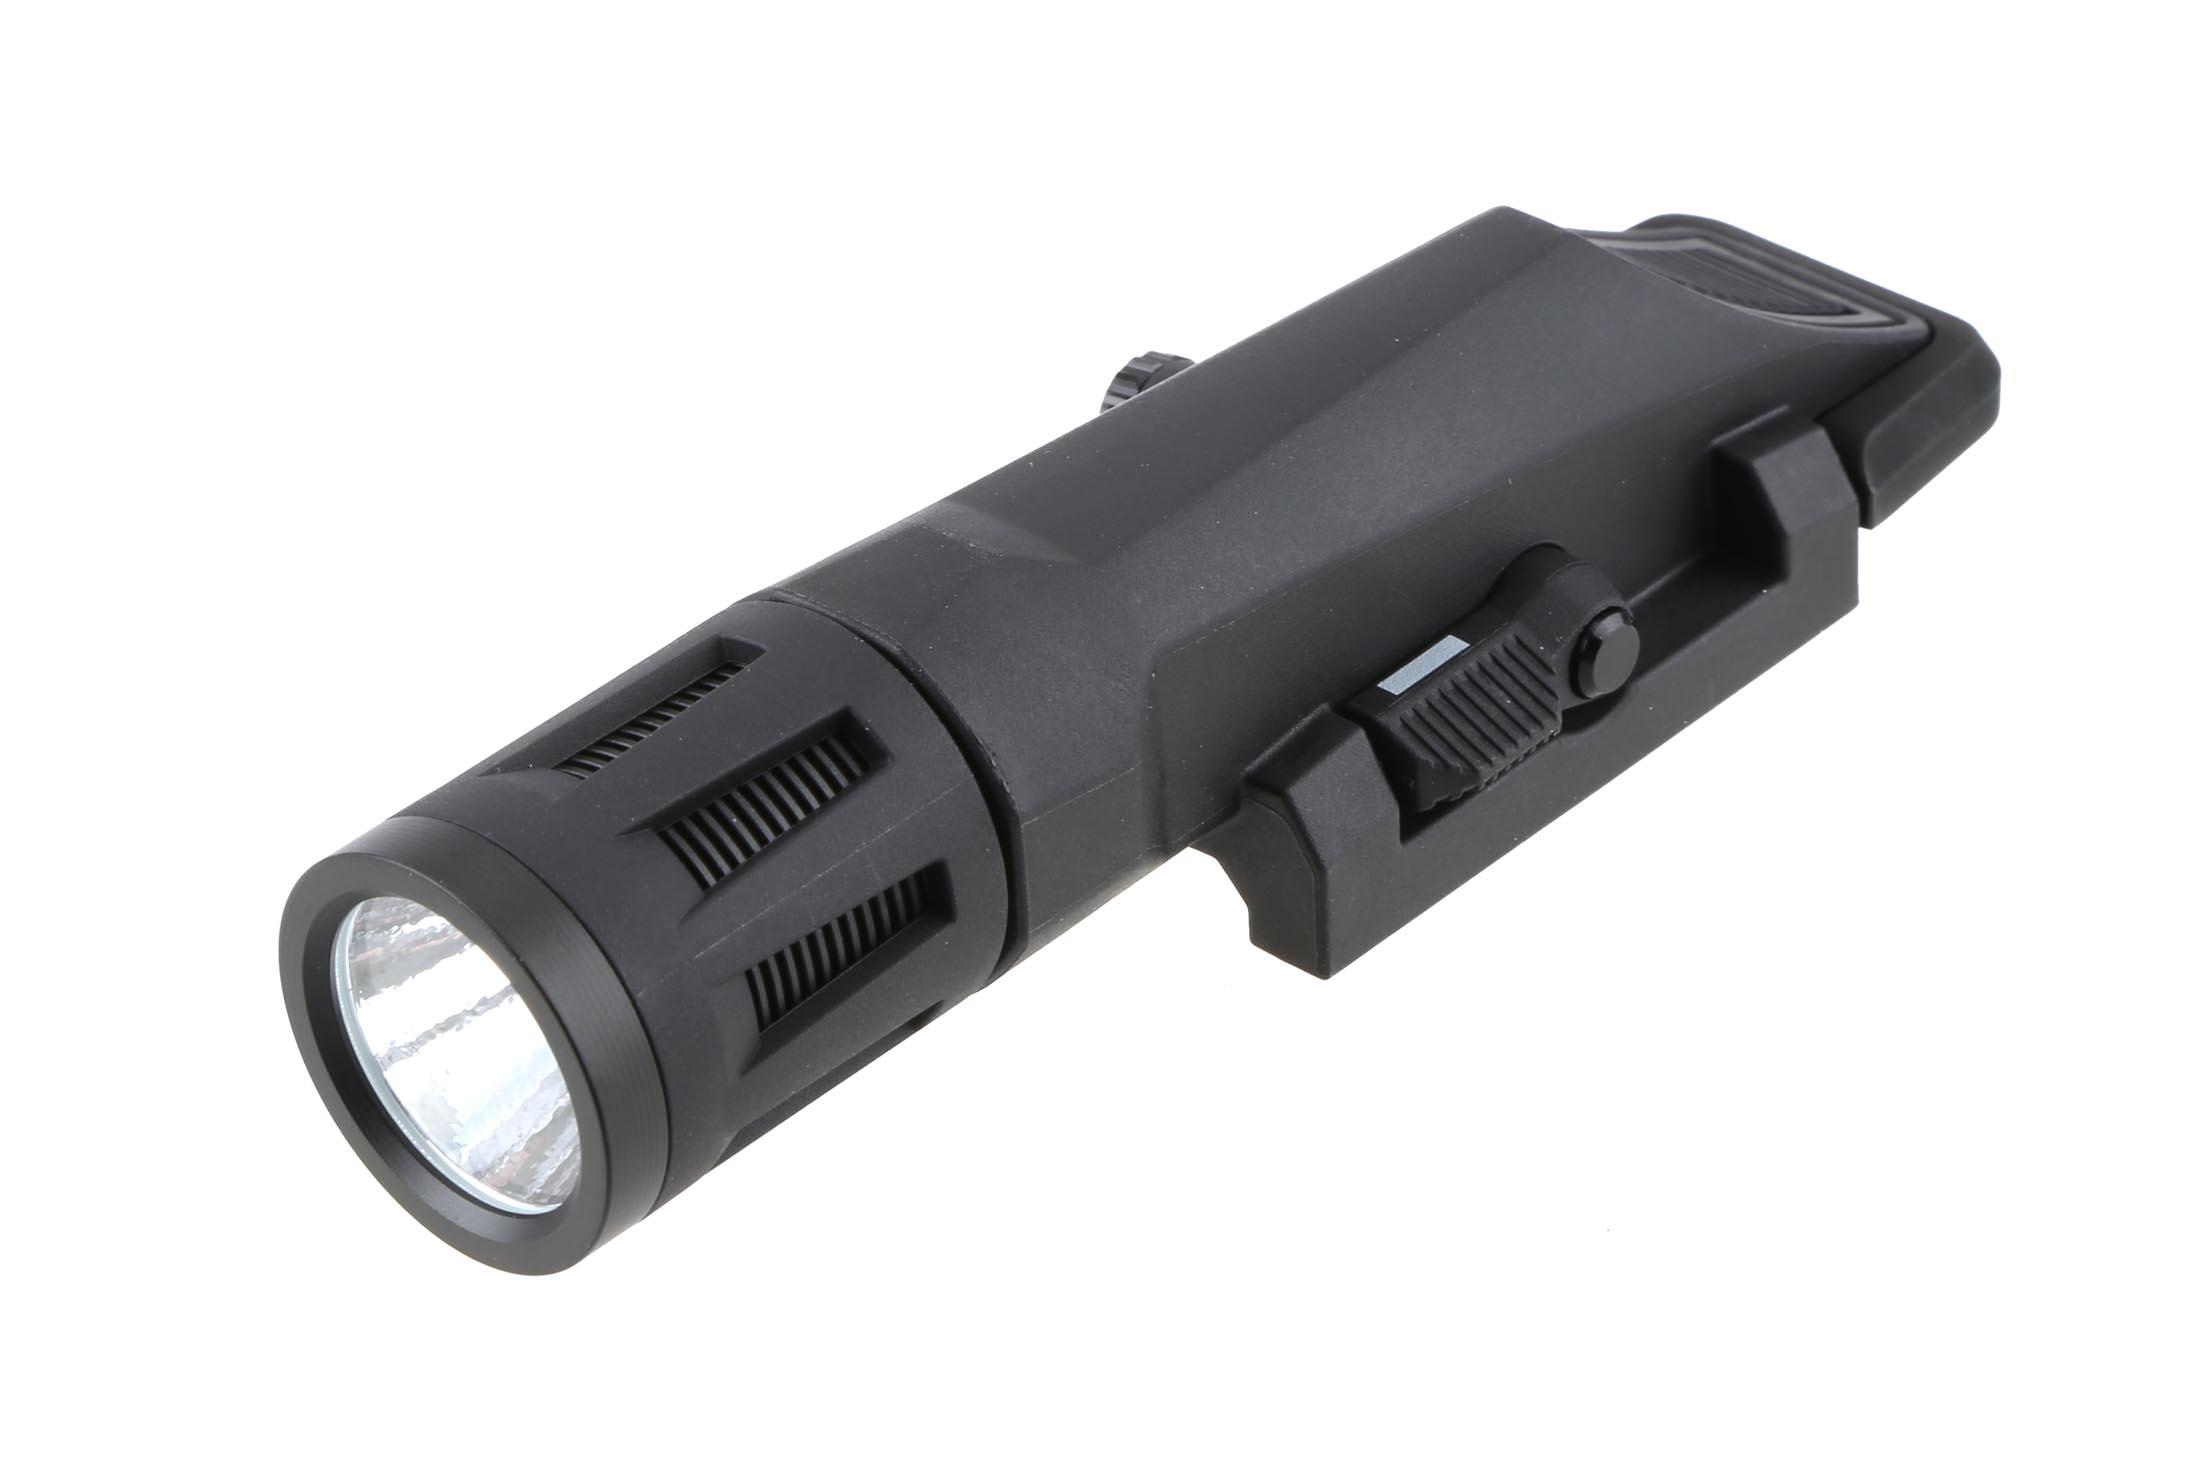 This Inforce gun light features multiple light modes like momentary, strobe, and continuous